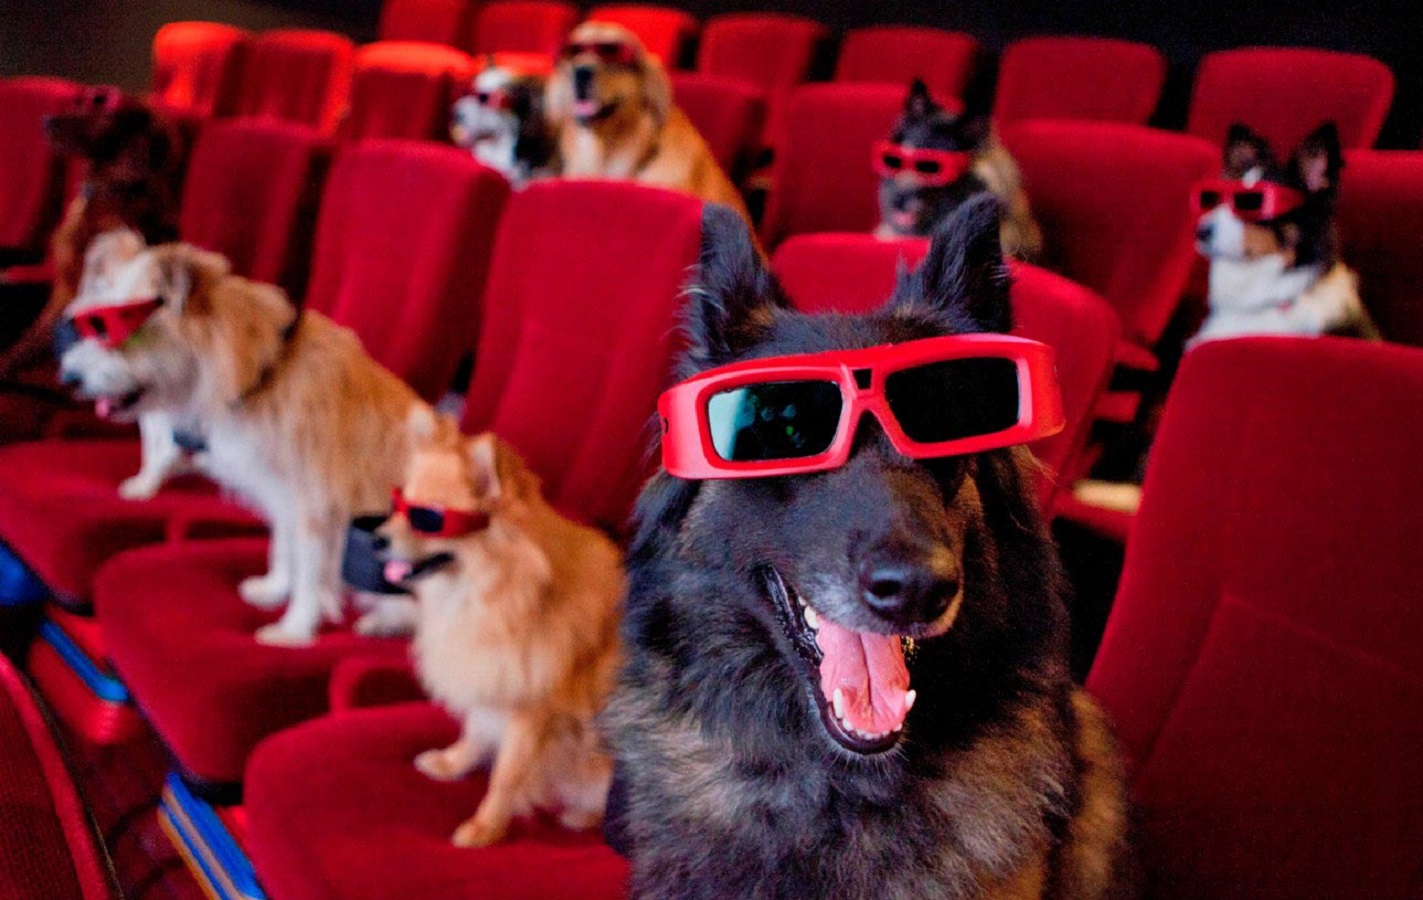 film sui cani - pills of movies